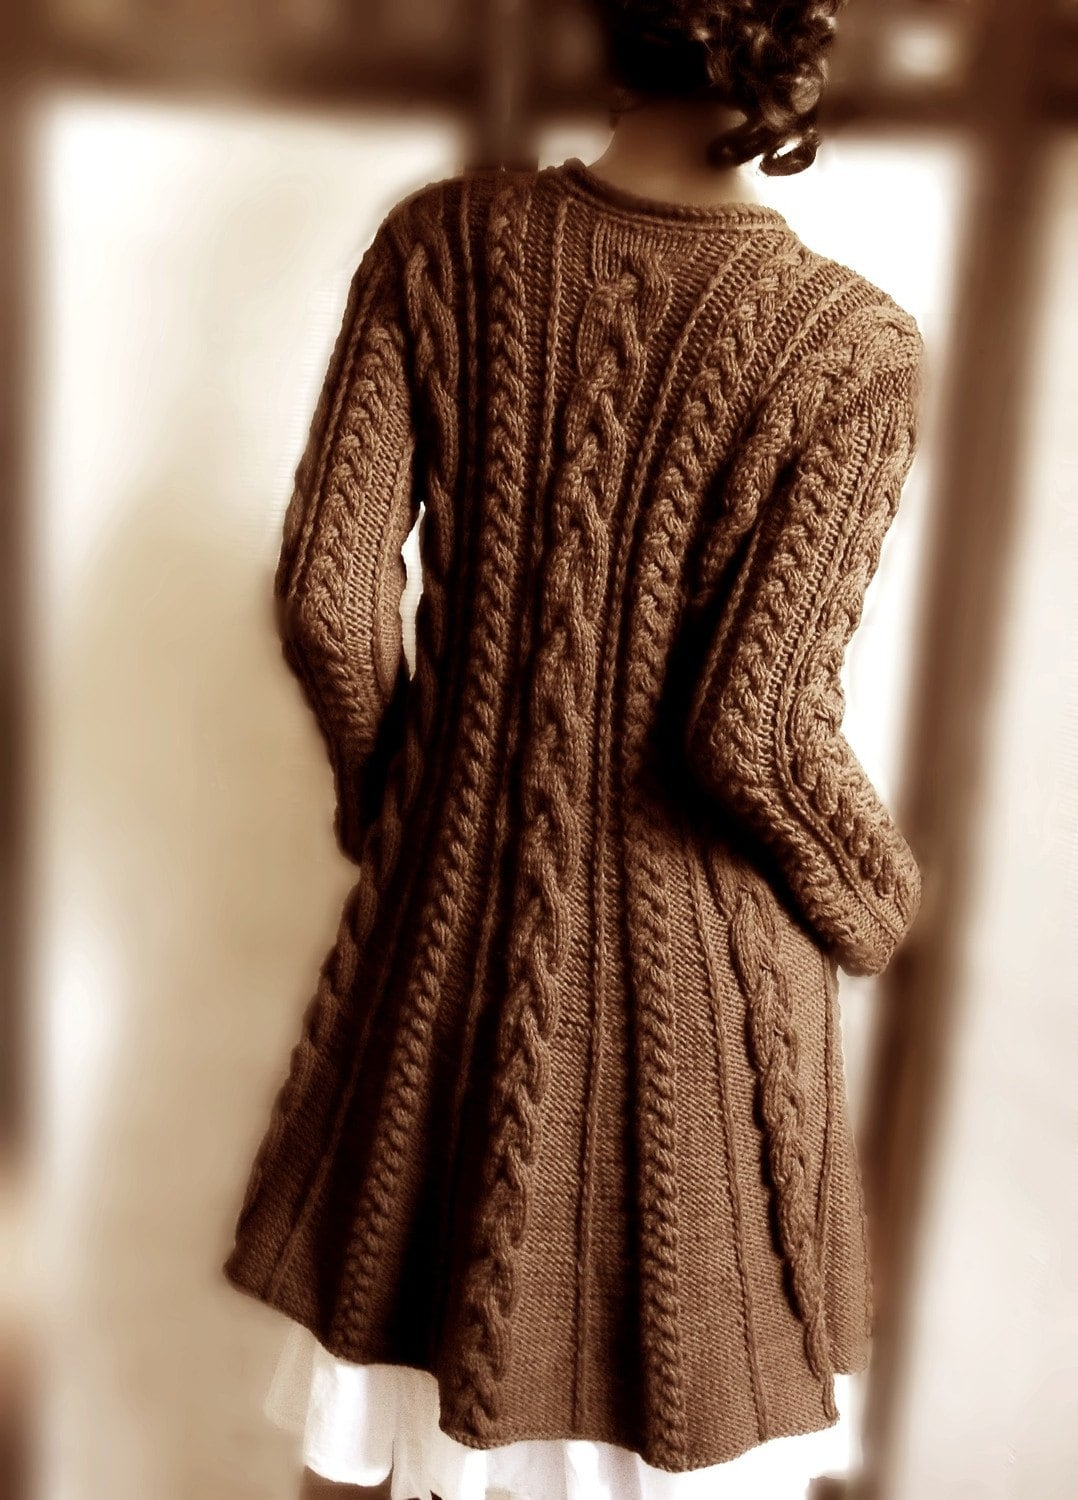 Handknitted Cabled کت خط در Chocholate پشم خالص قهوه ای توسط Pilland